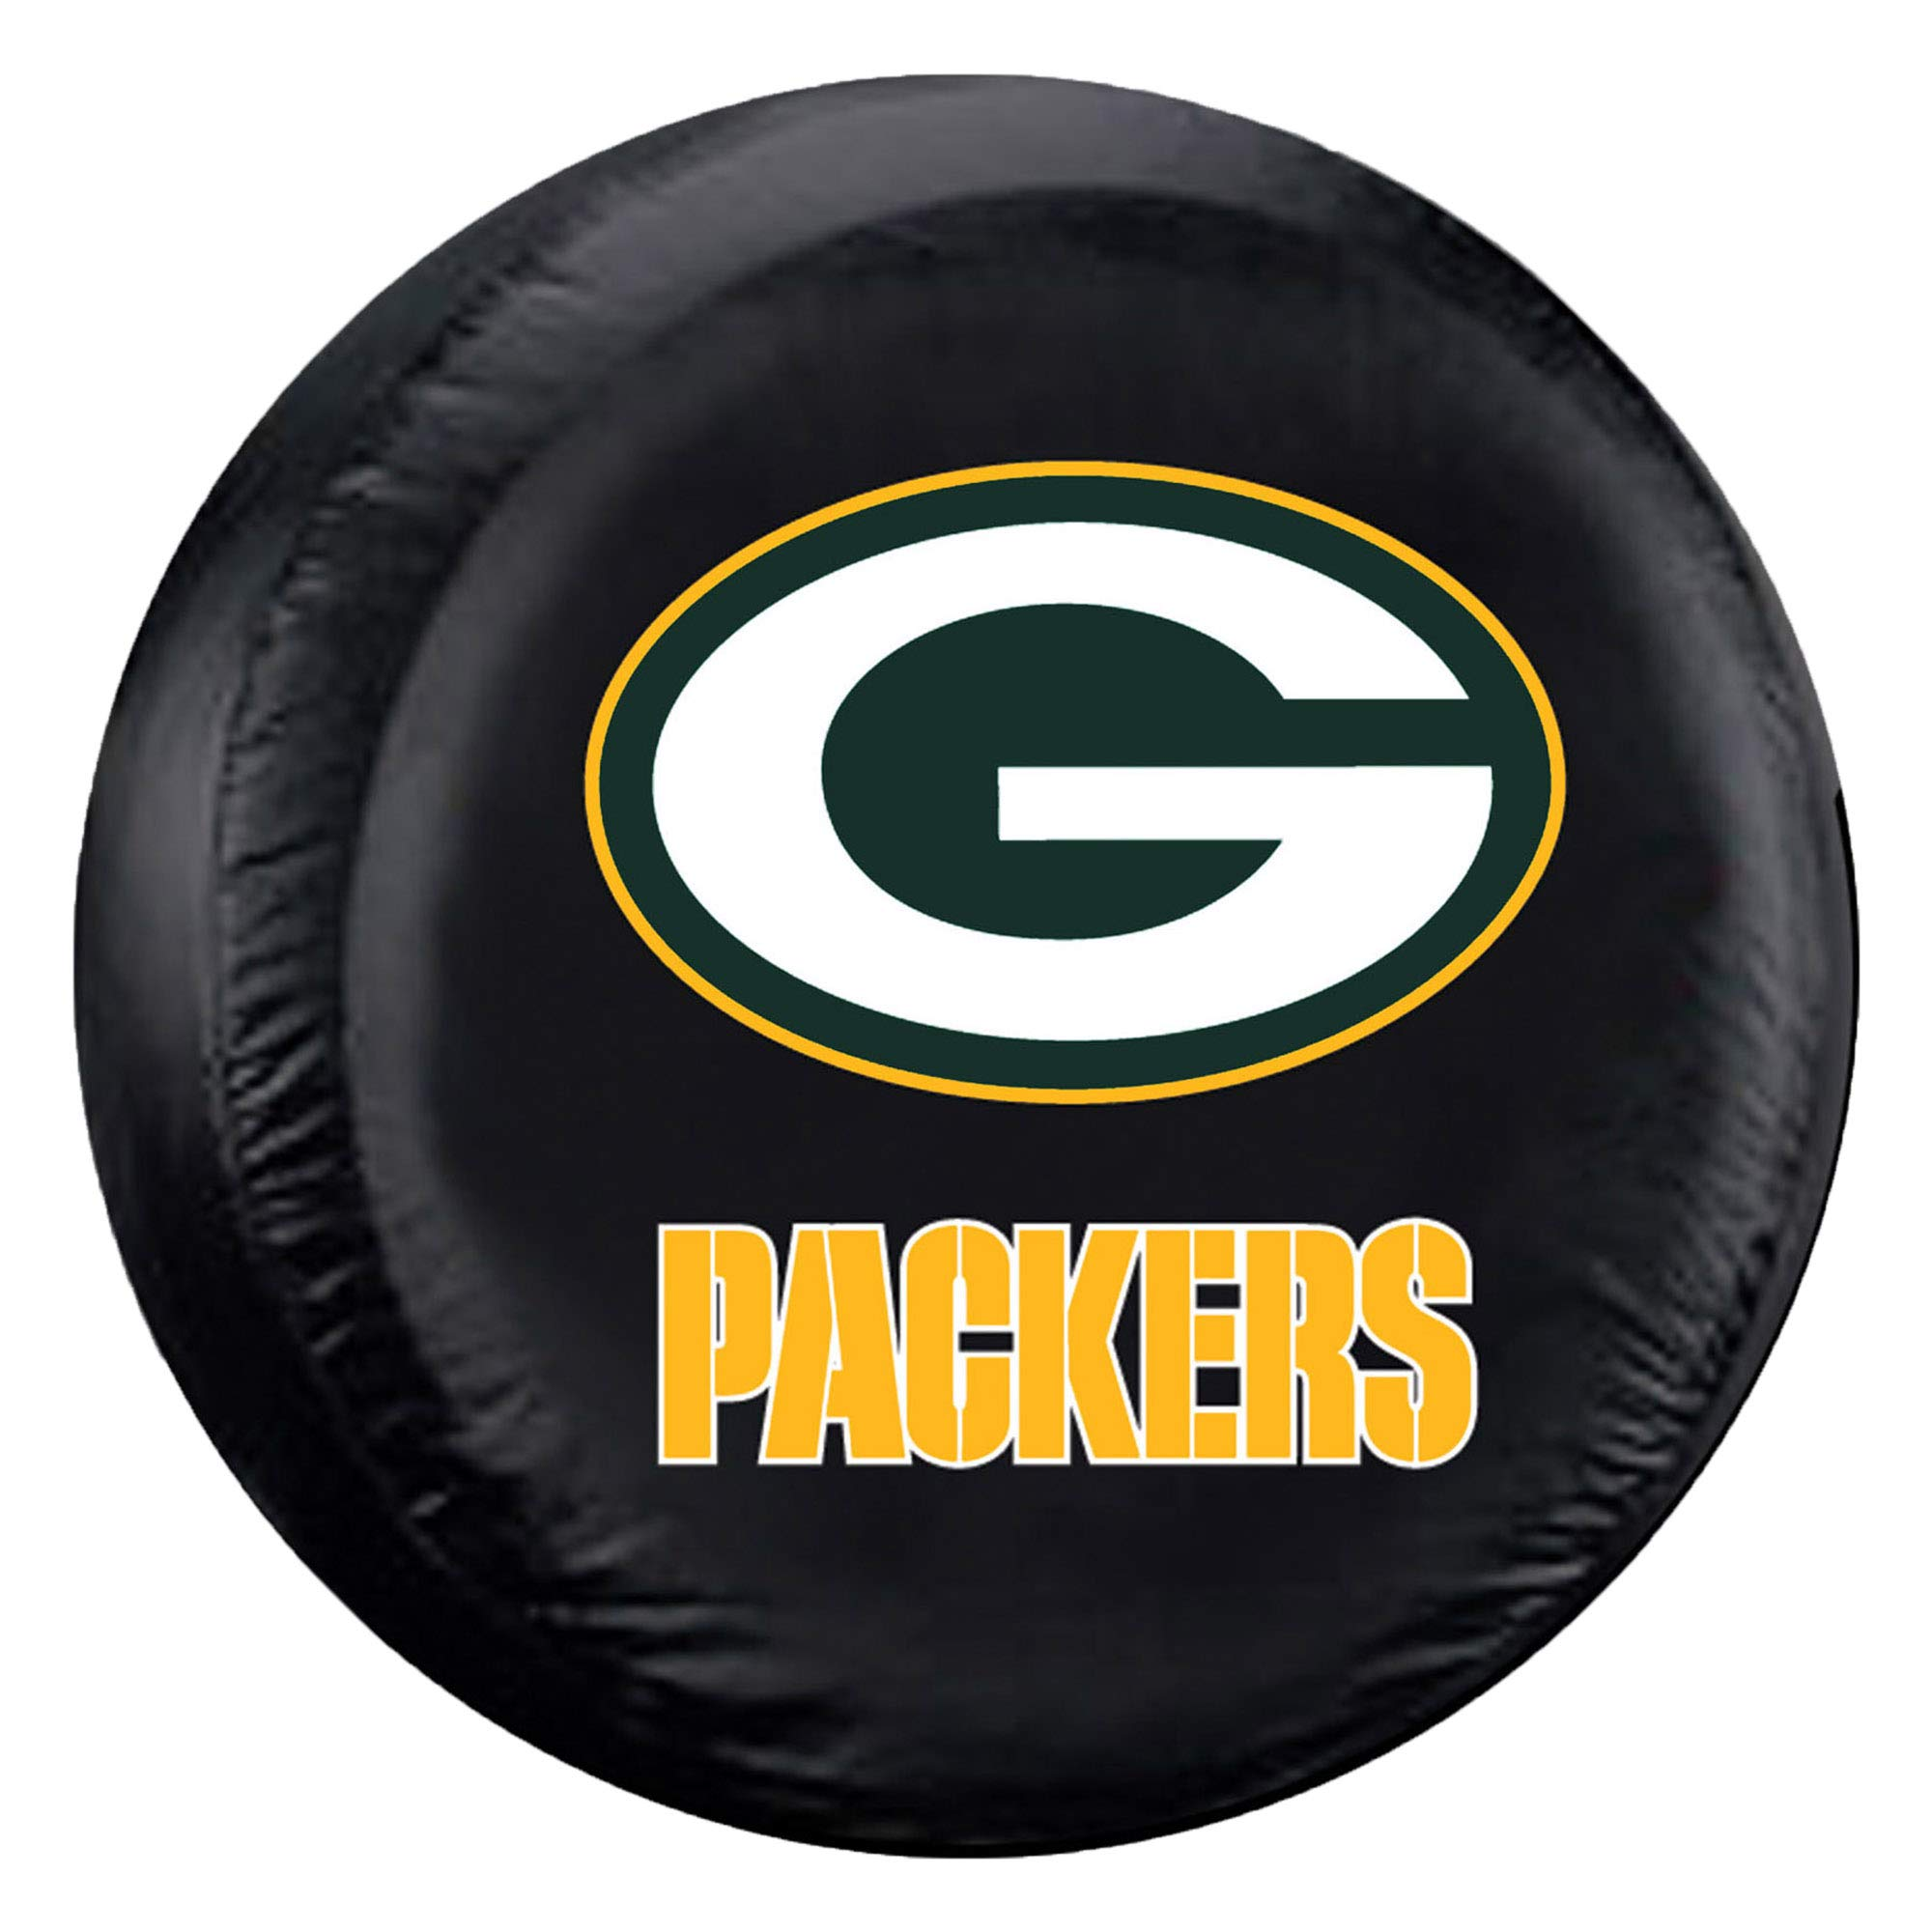 Fremont Die NFL Green Bay Packers Tire Cover, Large Size (30-32'' Diameter) by Fremont Die